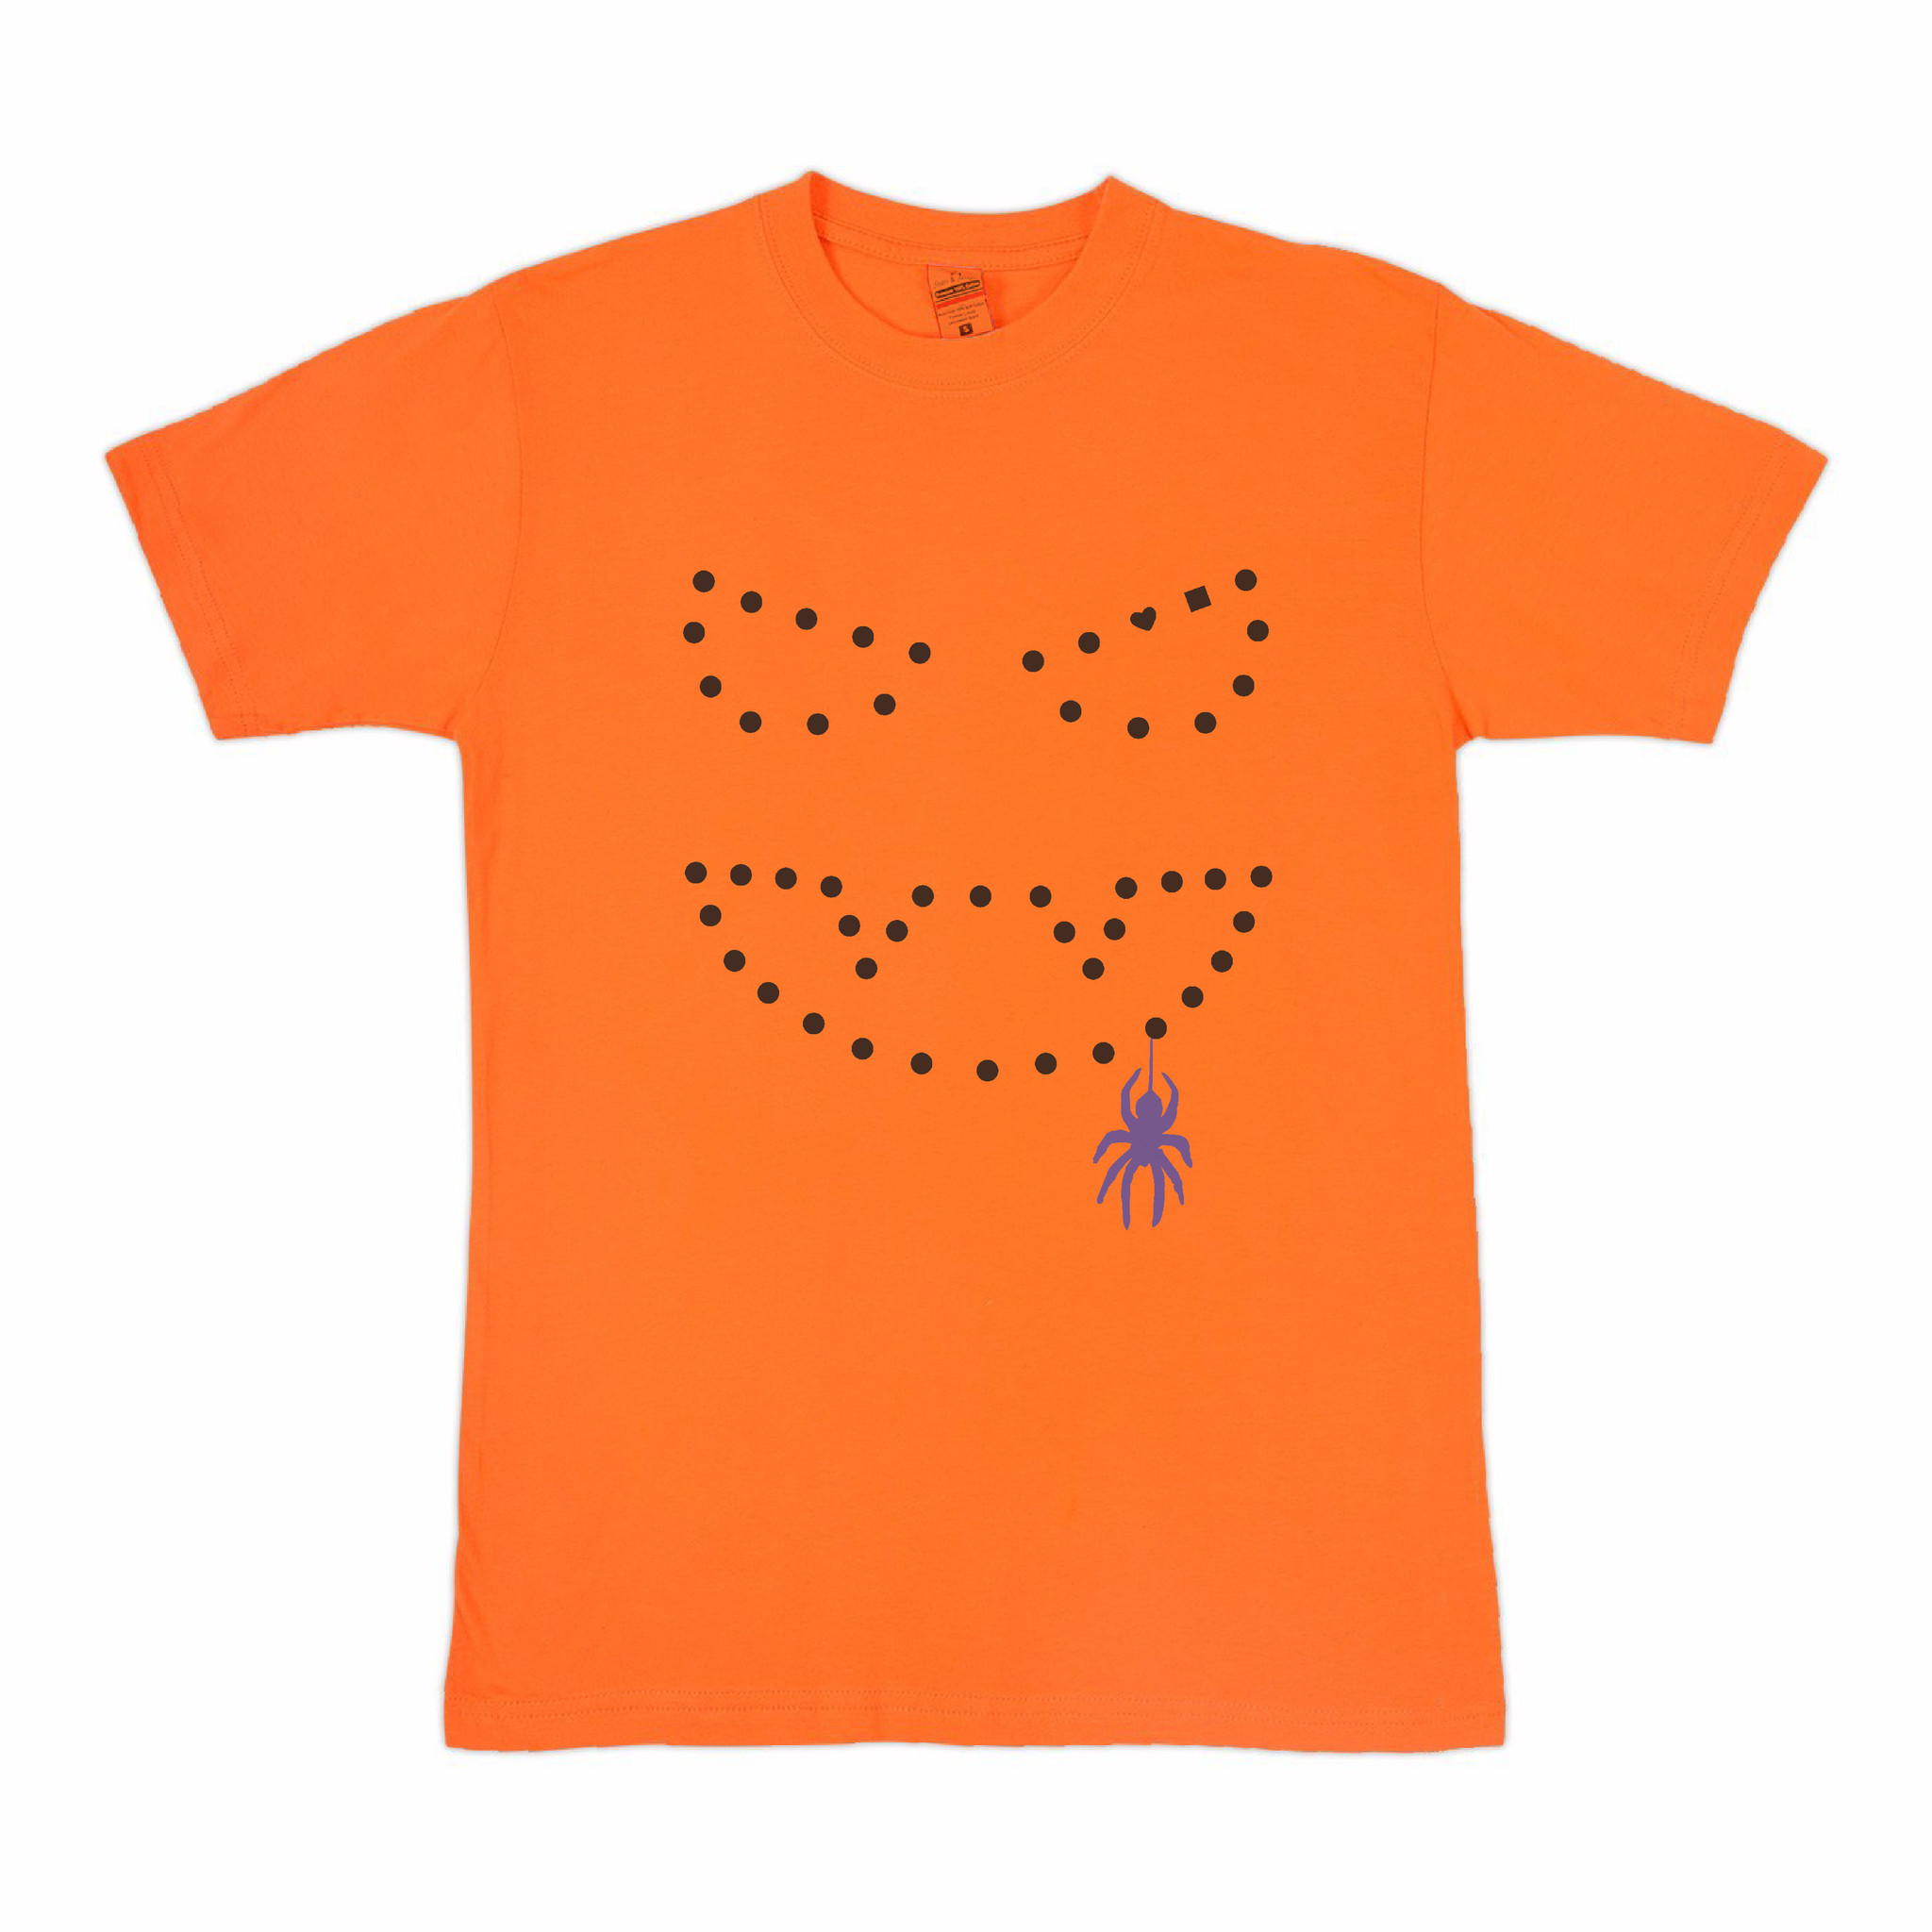 BLUETILE BLUETILE NIGHT OF MISCHIEF T-SHIRT ORANGE